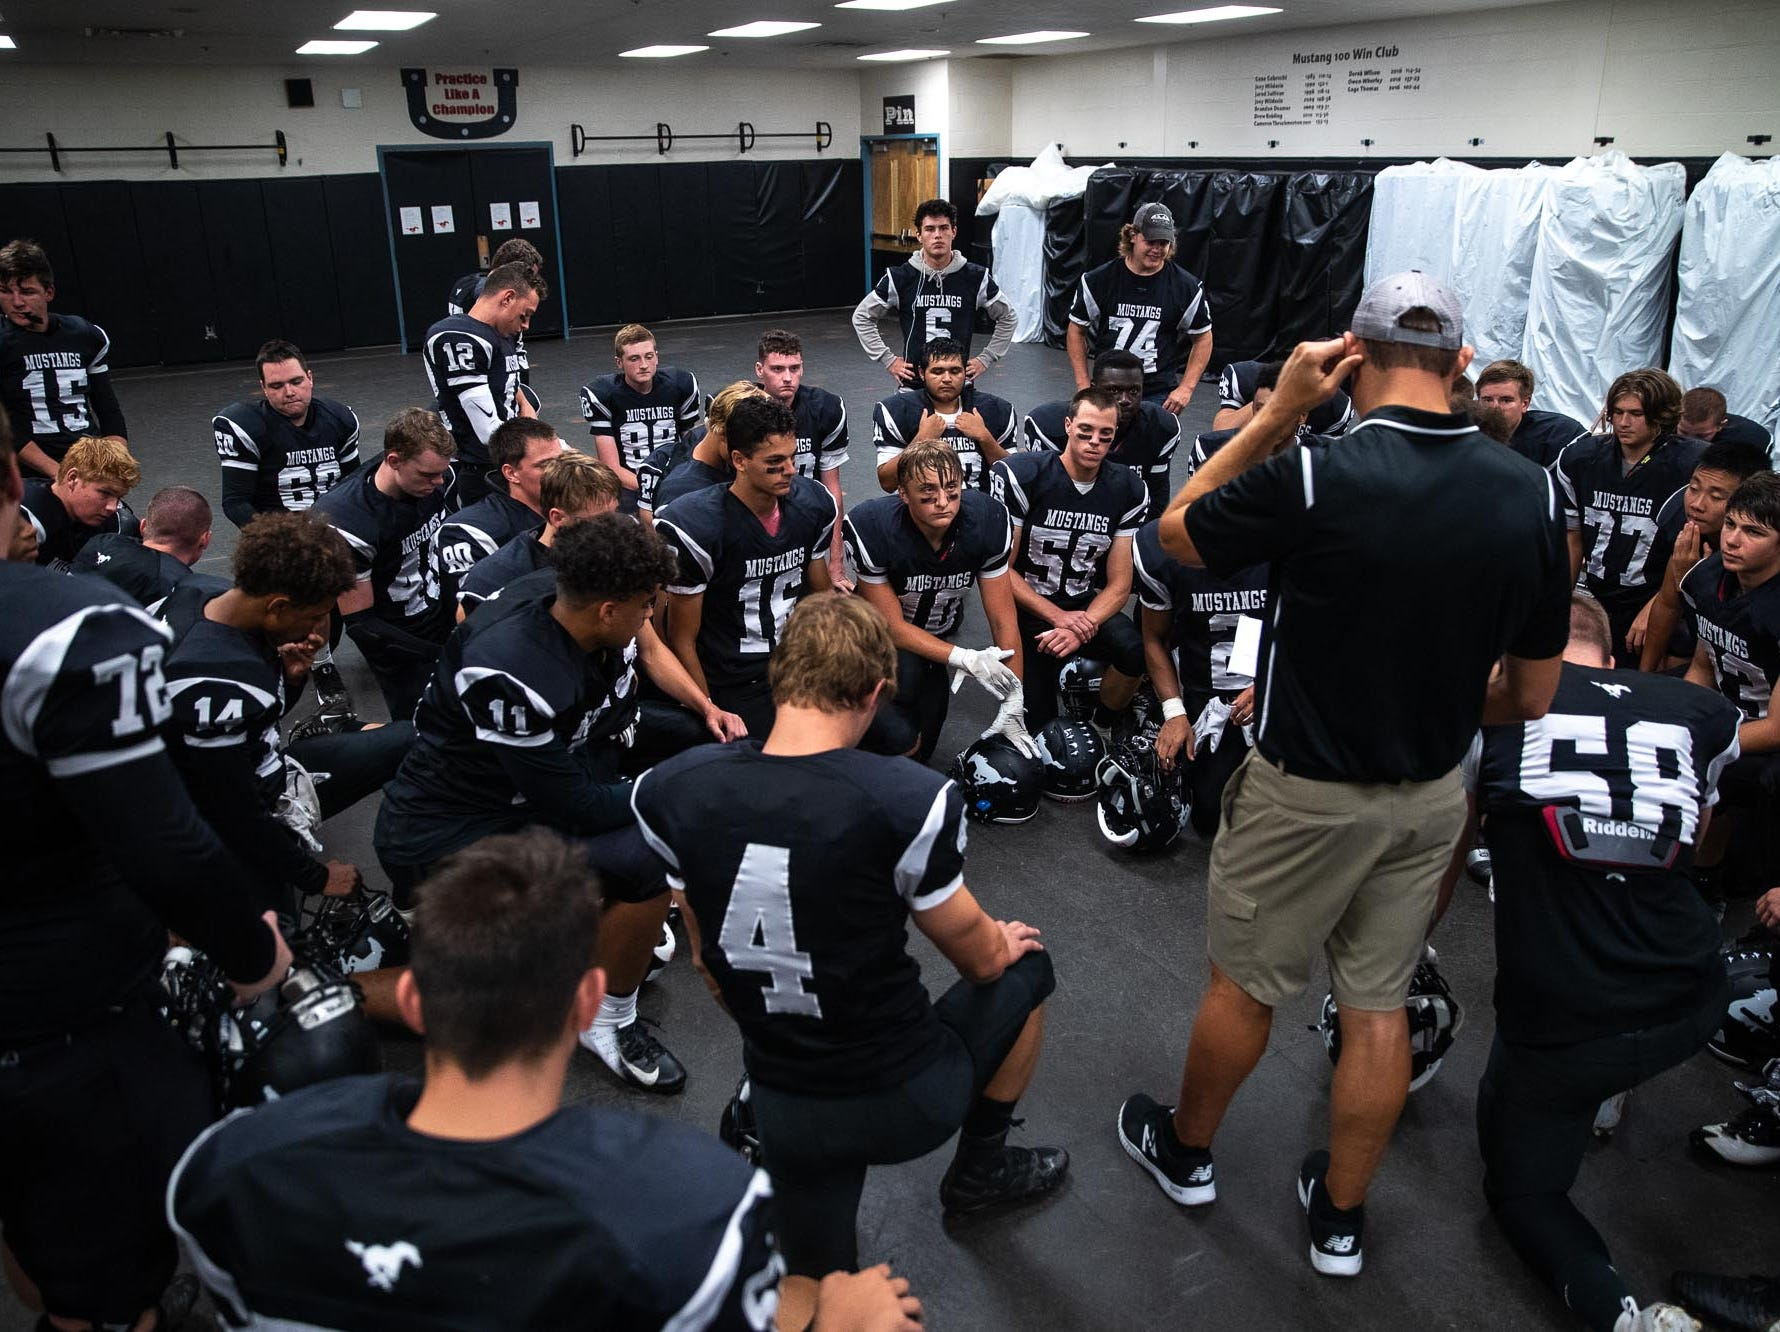 South Western players listen to headcoach Chris Heilman in the locker room before a football game between South Western and Dallastown, Friday, Sept. 14, 2018, at South Western High School in Penn Township. Dallastown won, 35-7.